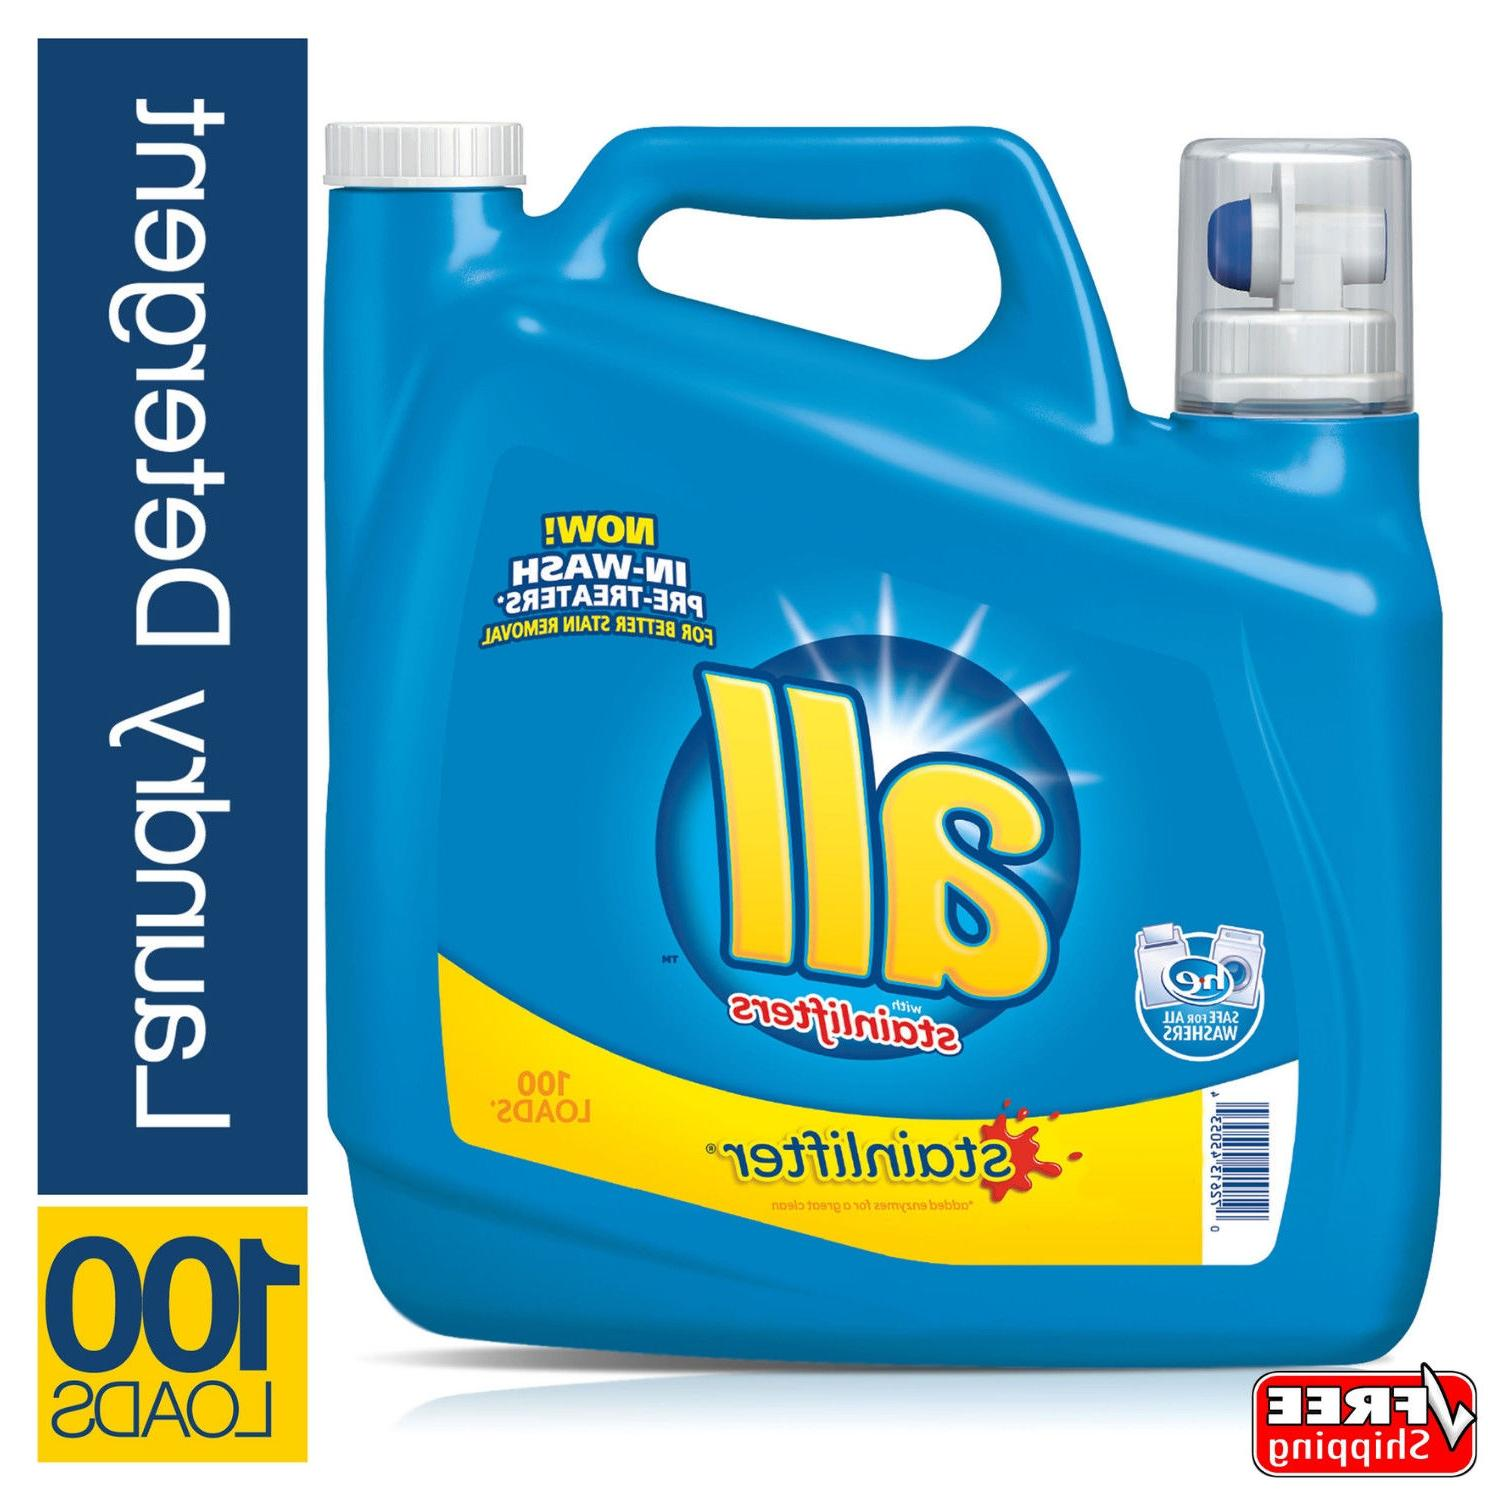 All Laundry Detergent Stainlifter 150 fl. oz.